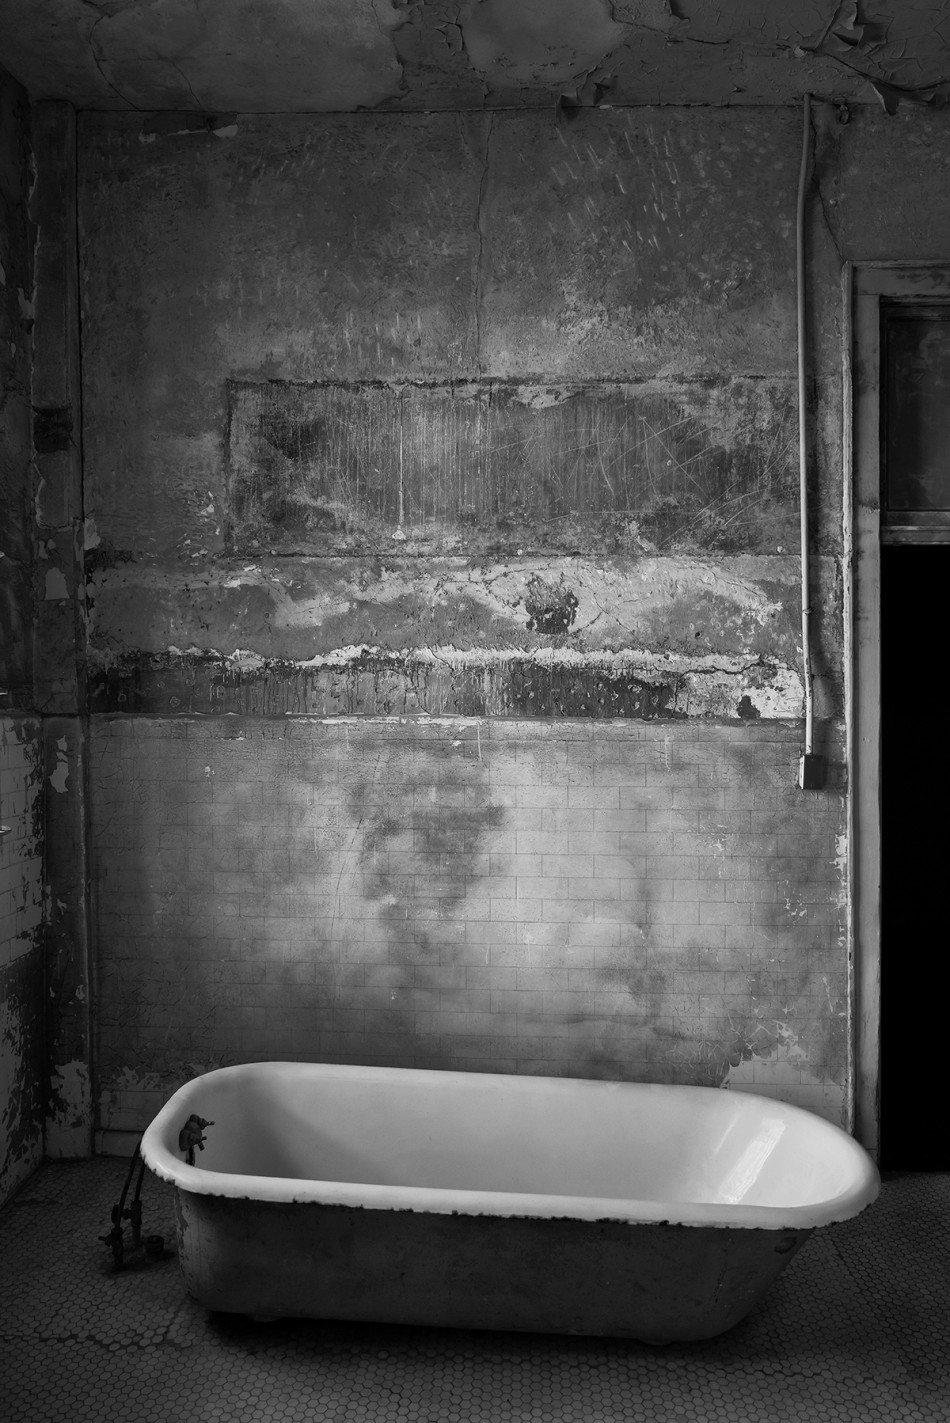 black and white image of a bath in the hydro-therapy room of Alcatraz Prison